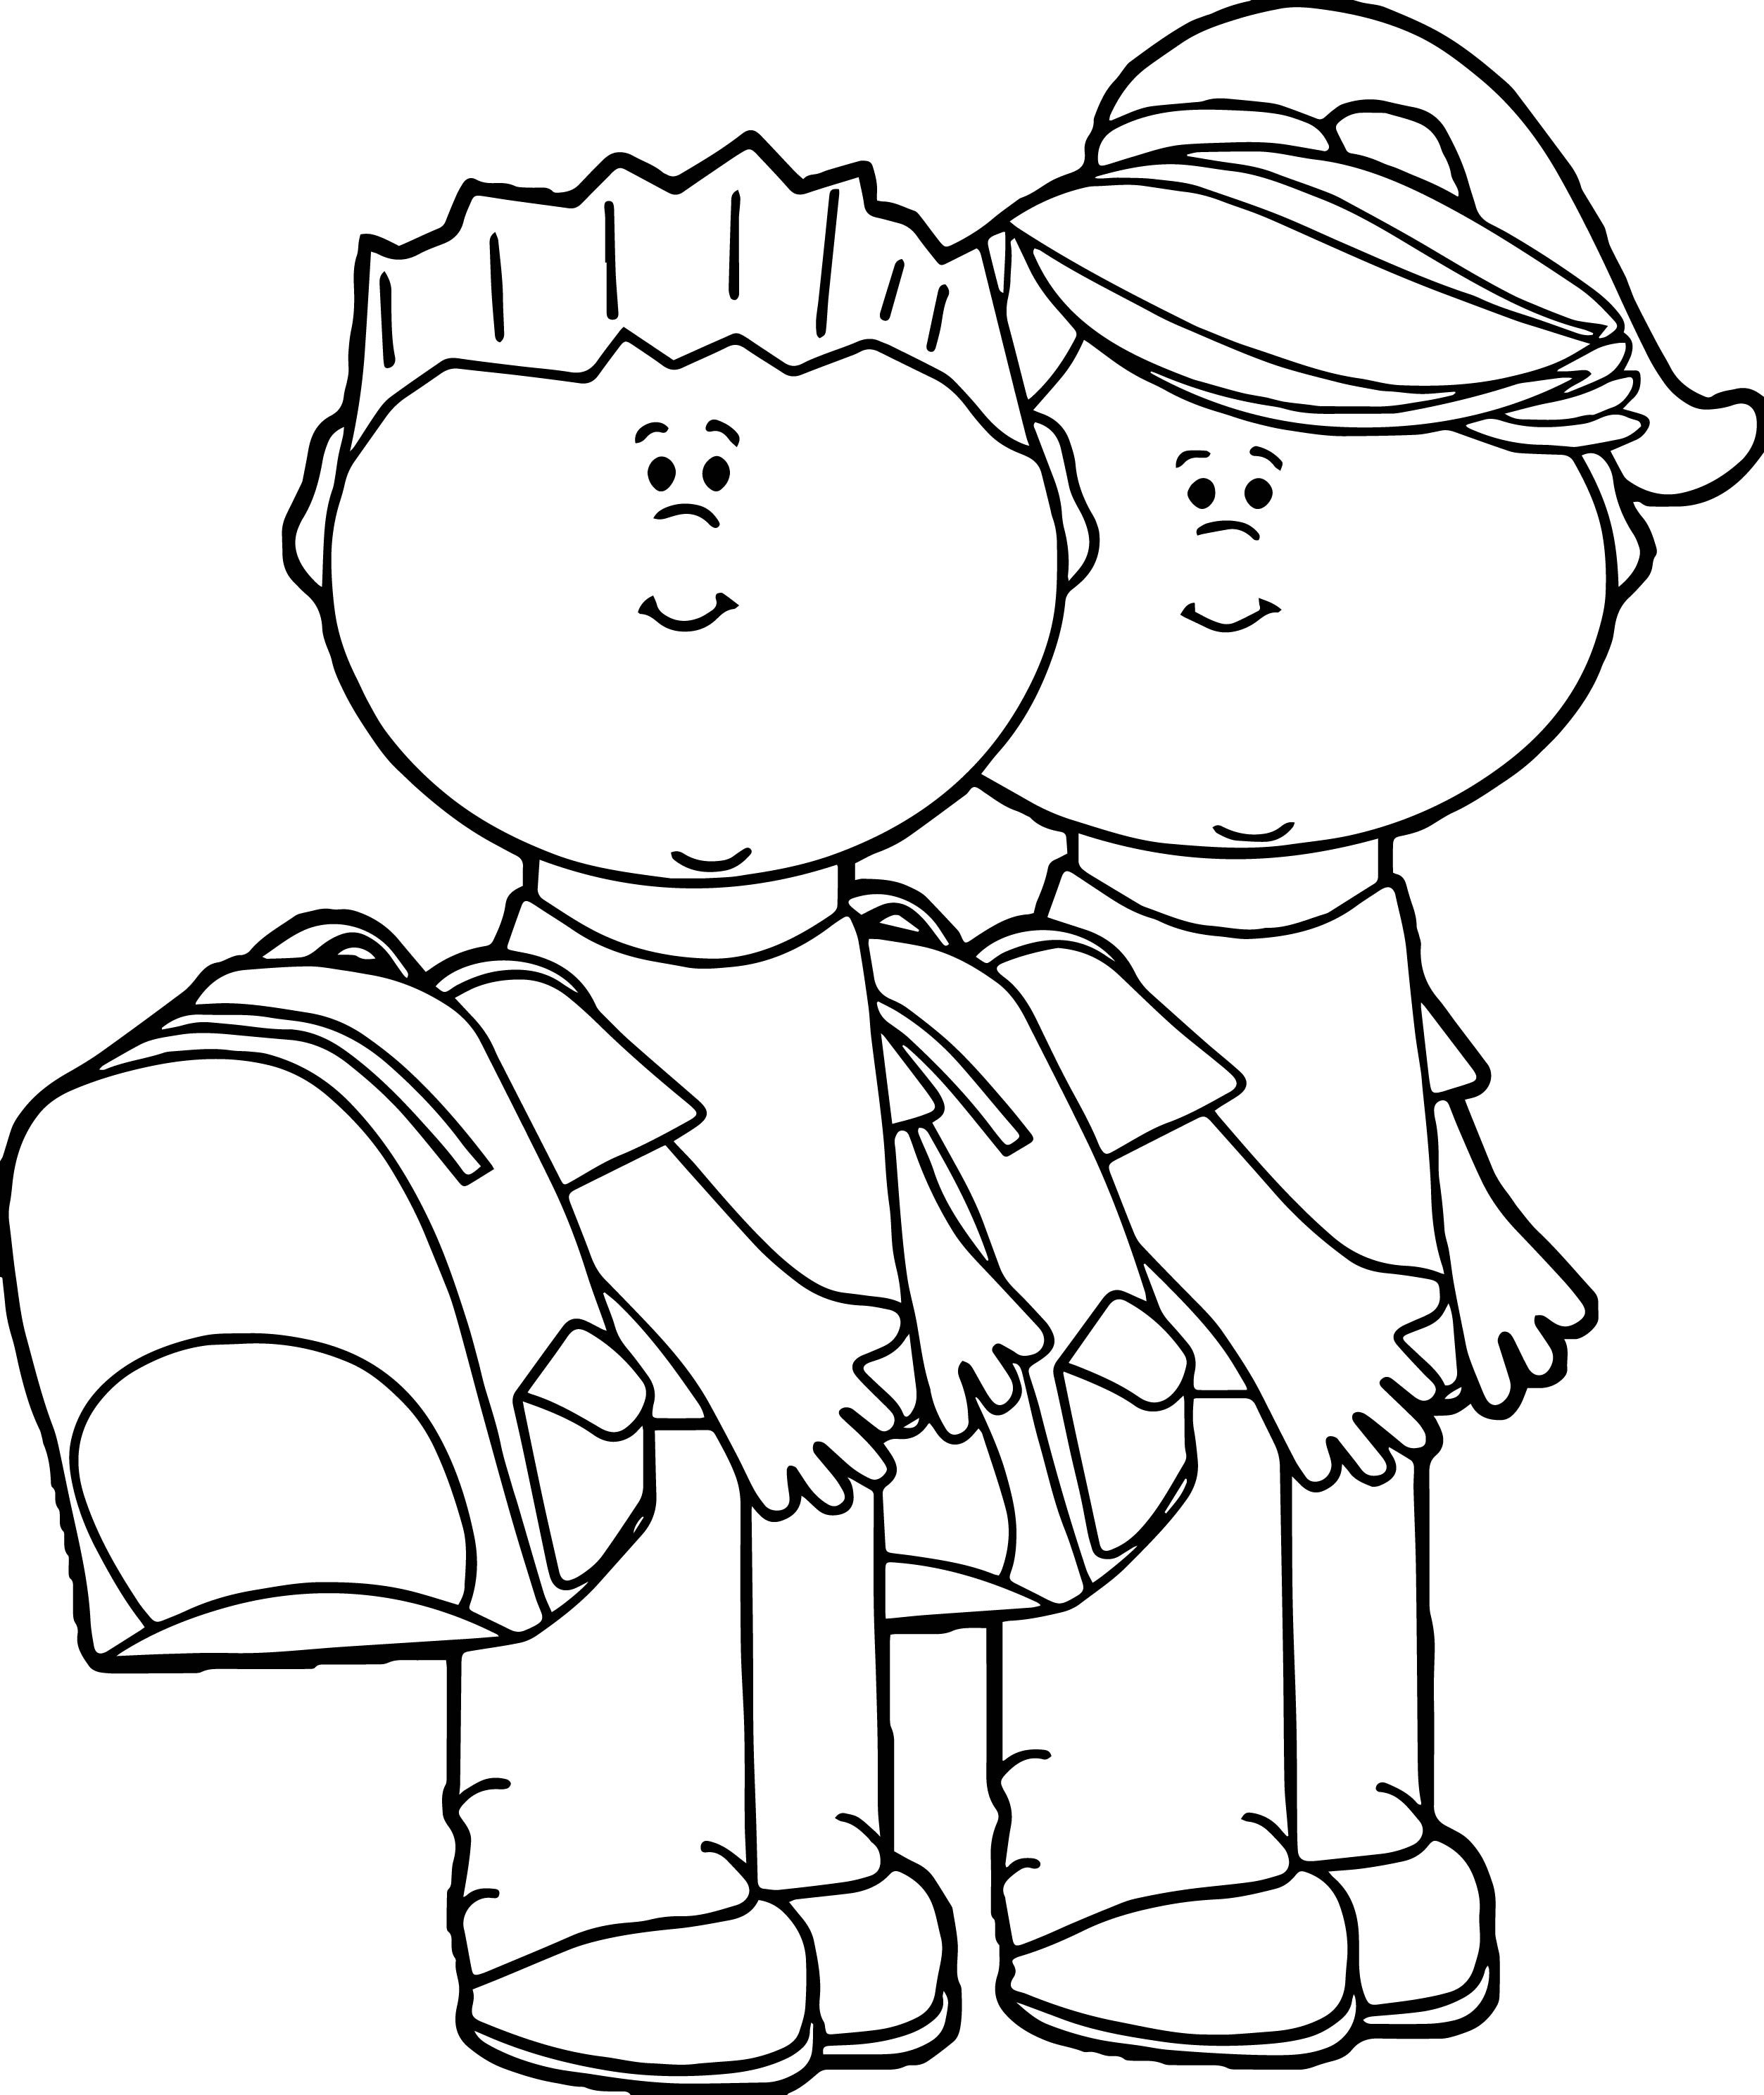 Kids Going To School Kids Coloring Page